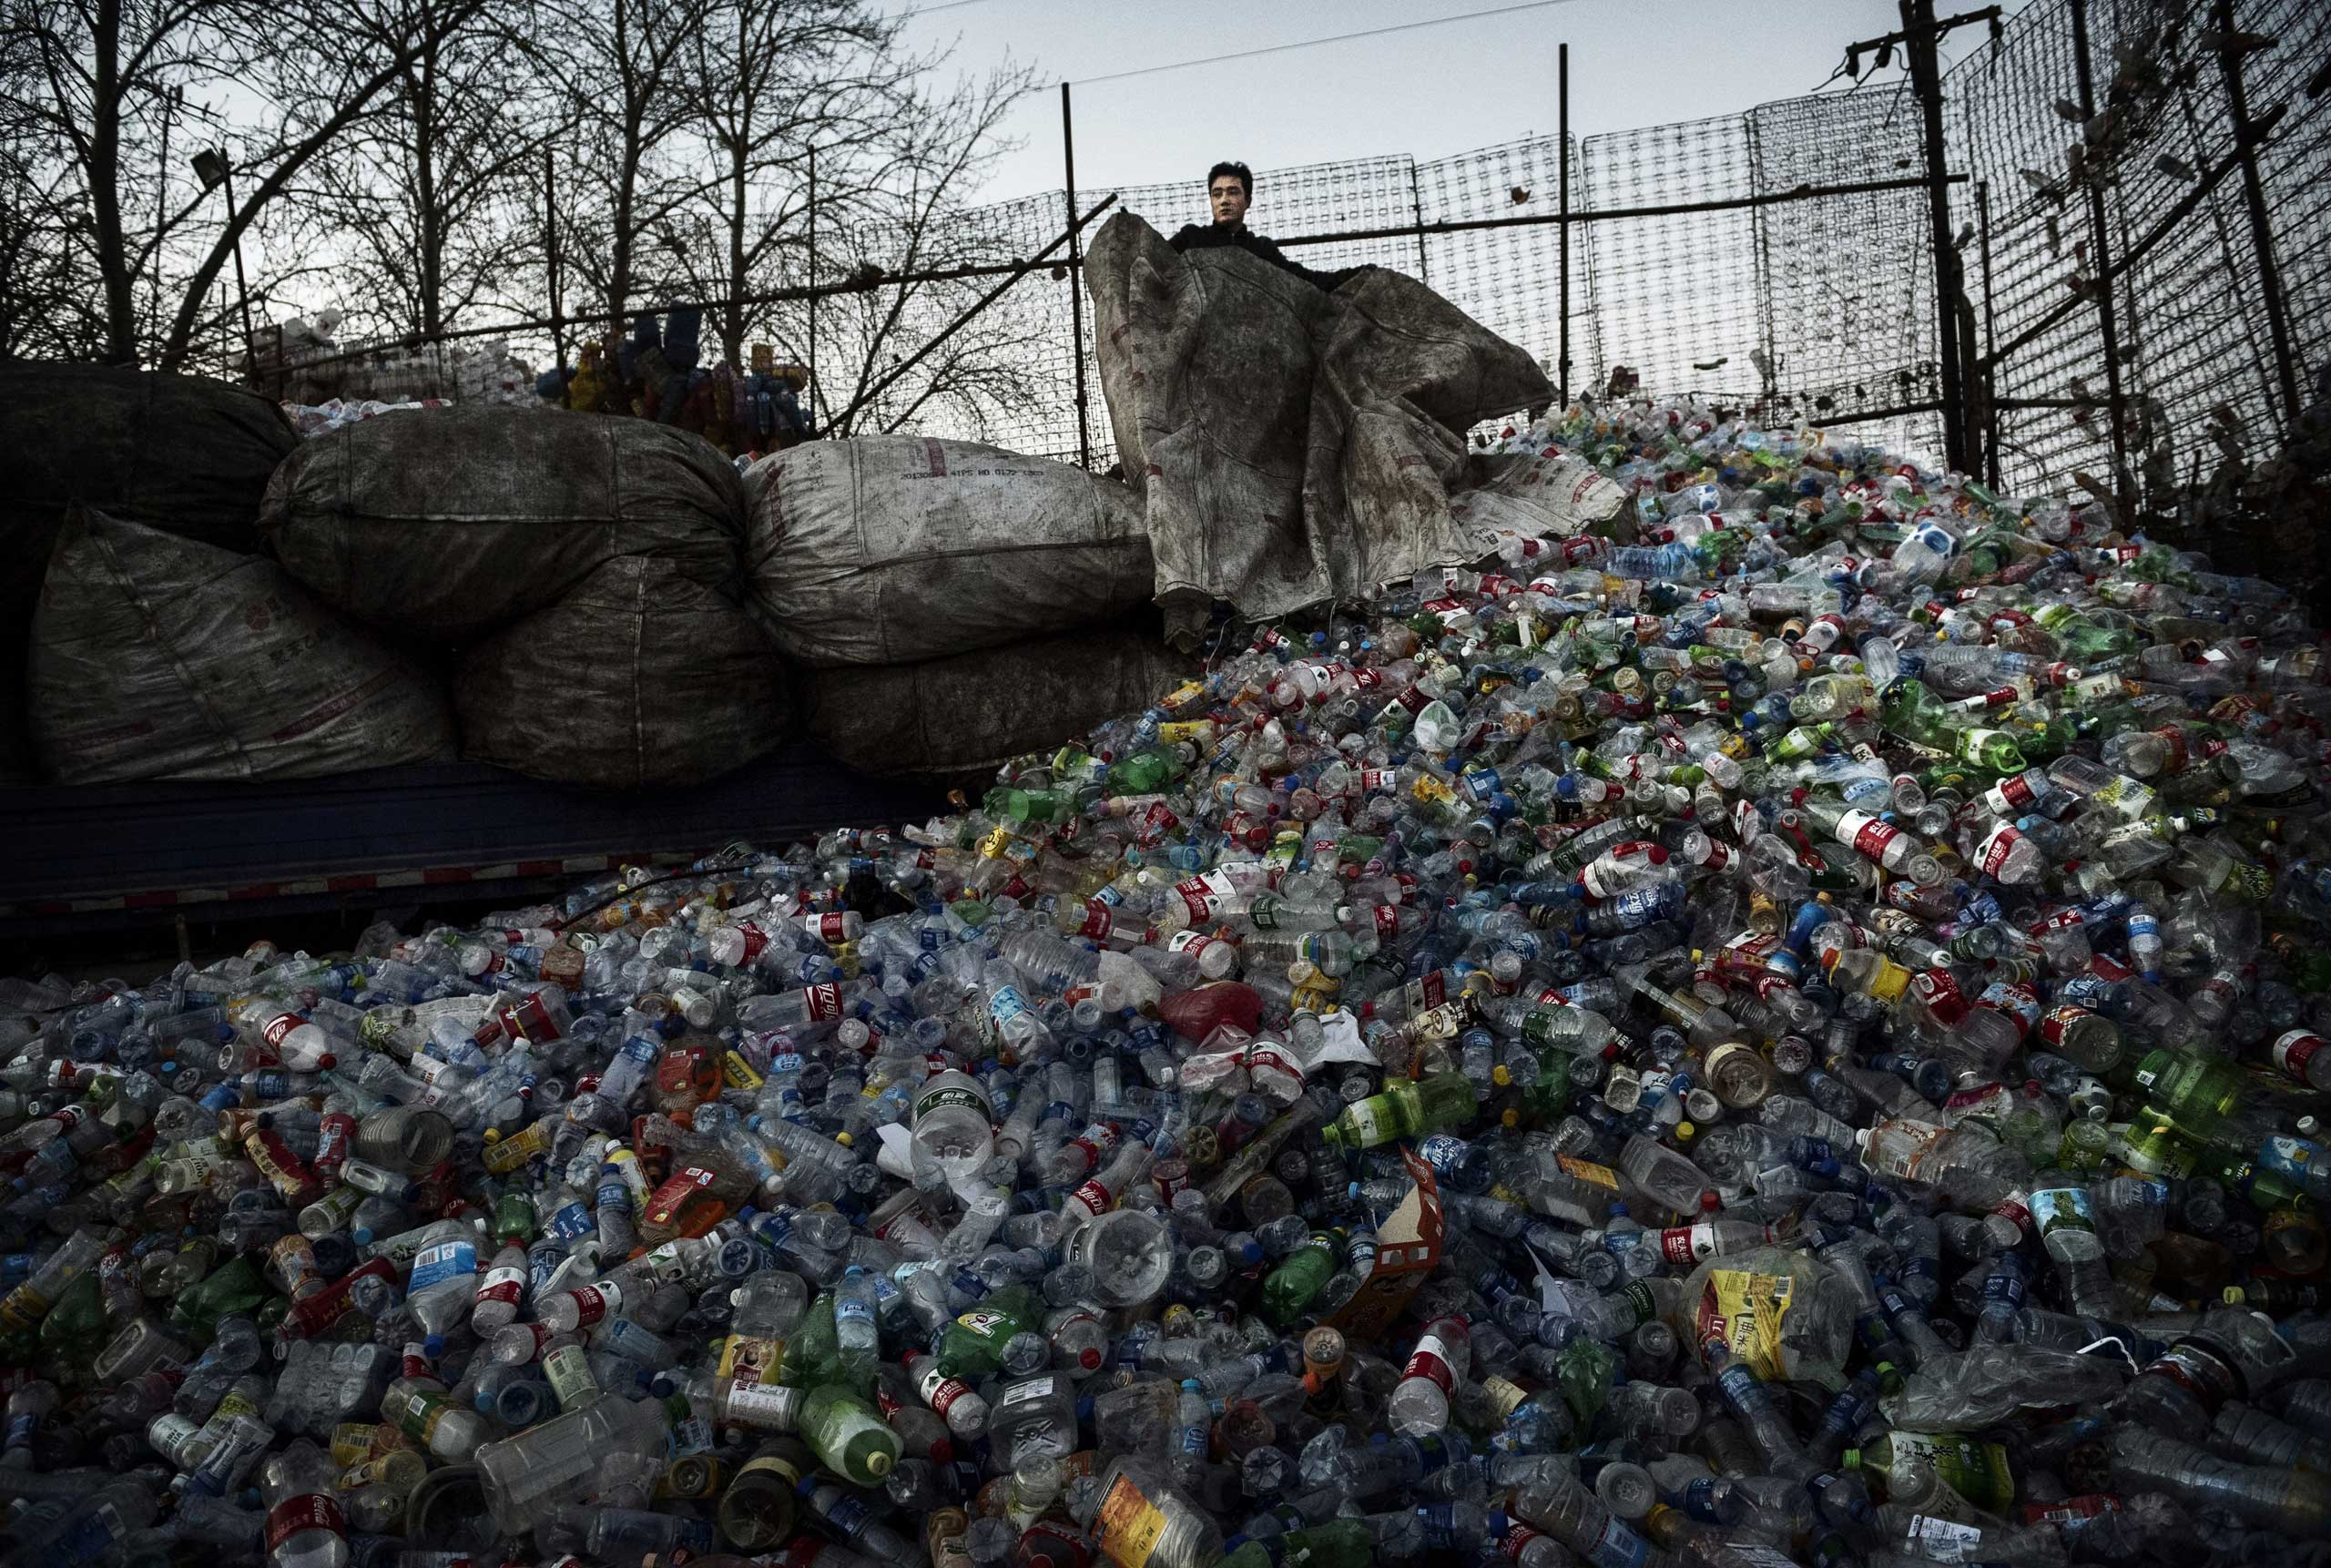 A laborer unloads plastic bottles to be recycled in the Dong Xiao Kou village on Dec. 12, 2014 in Beijing.